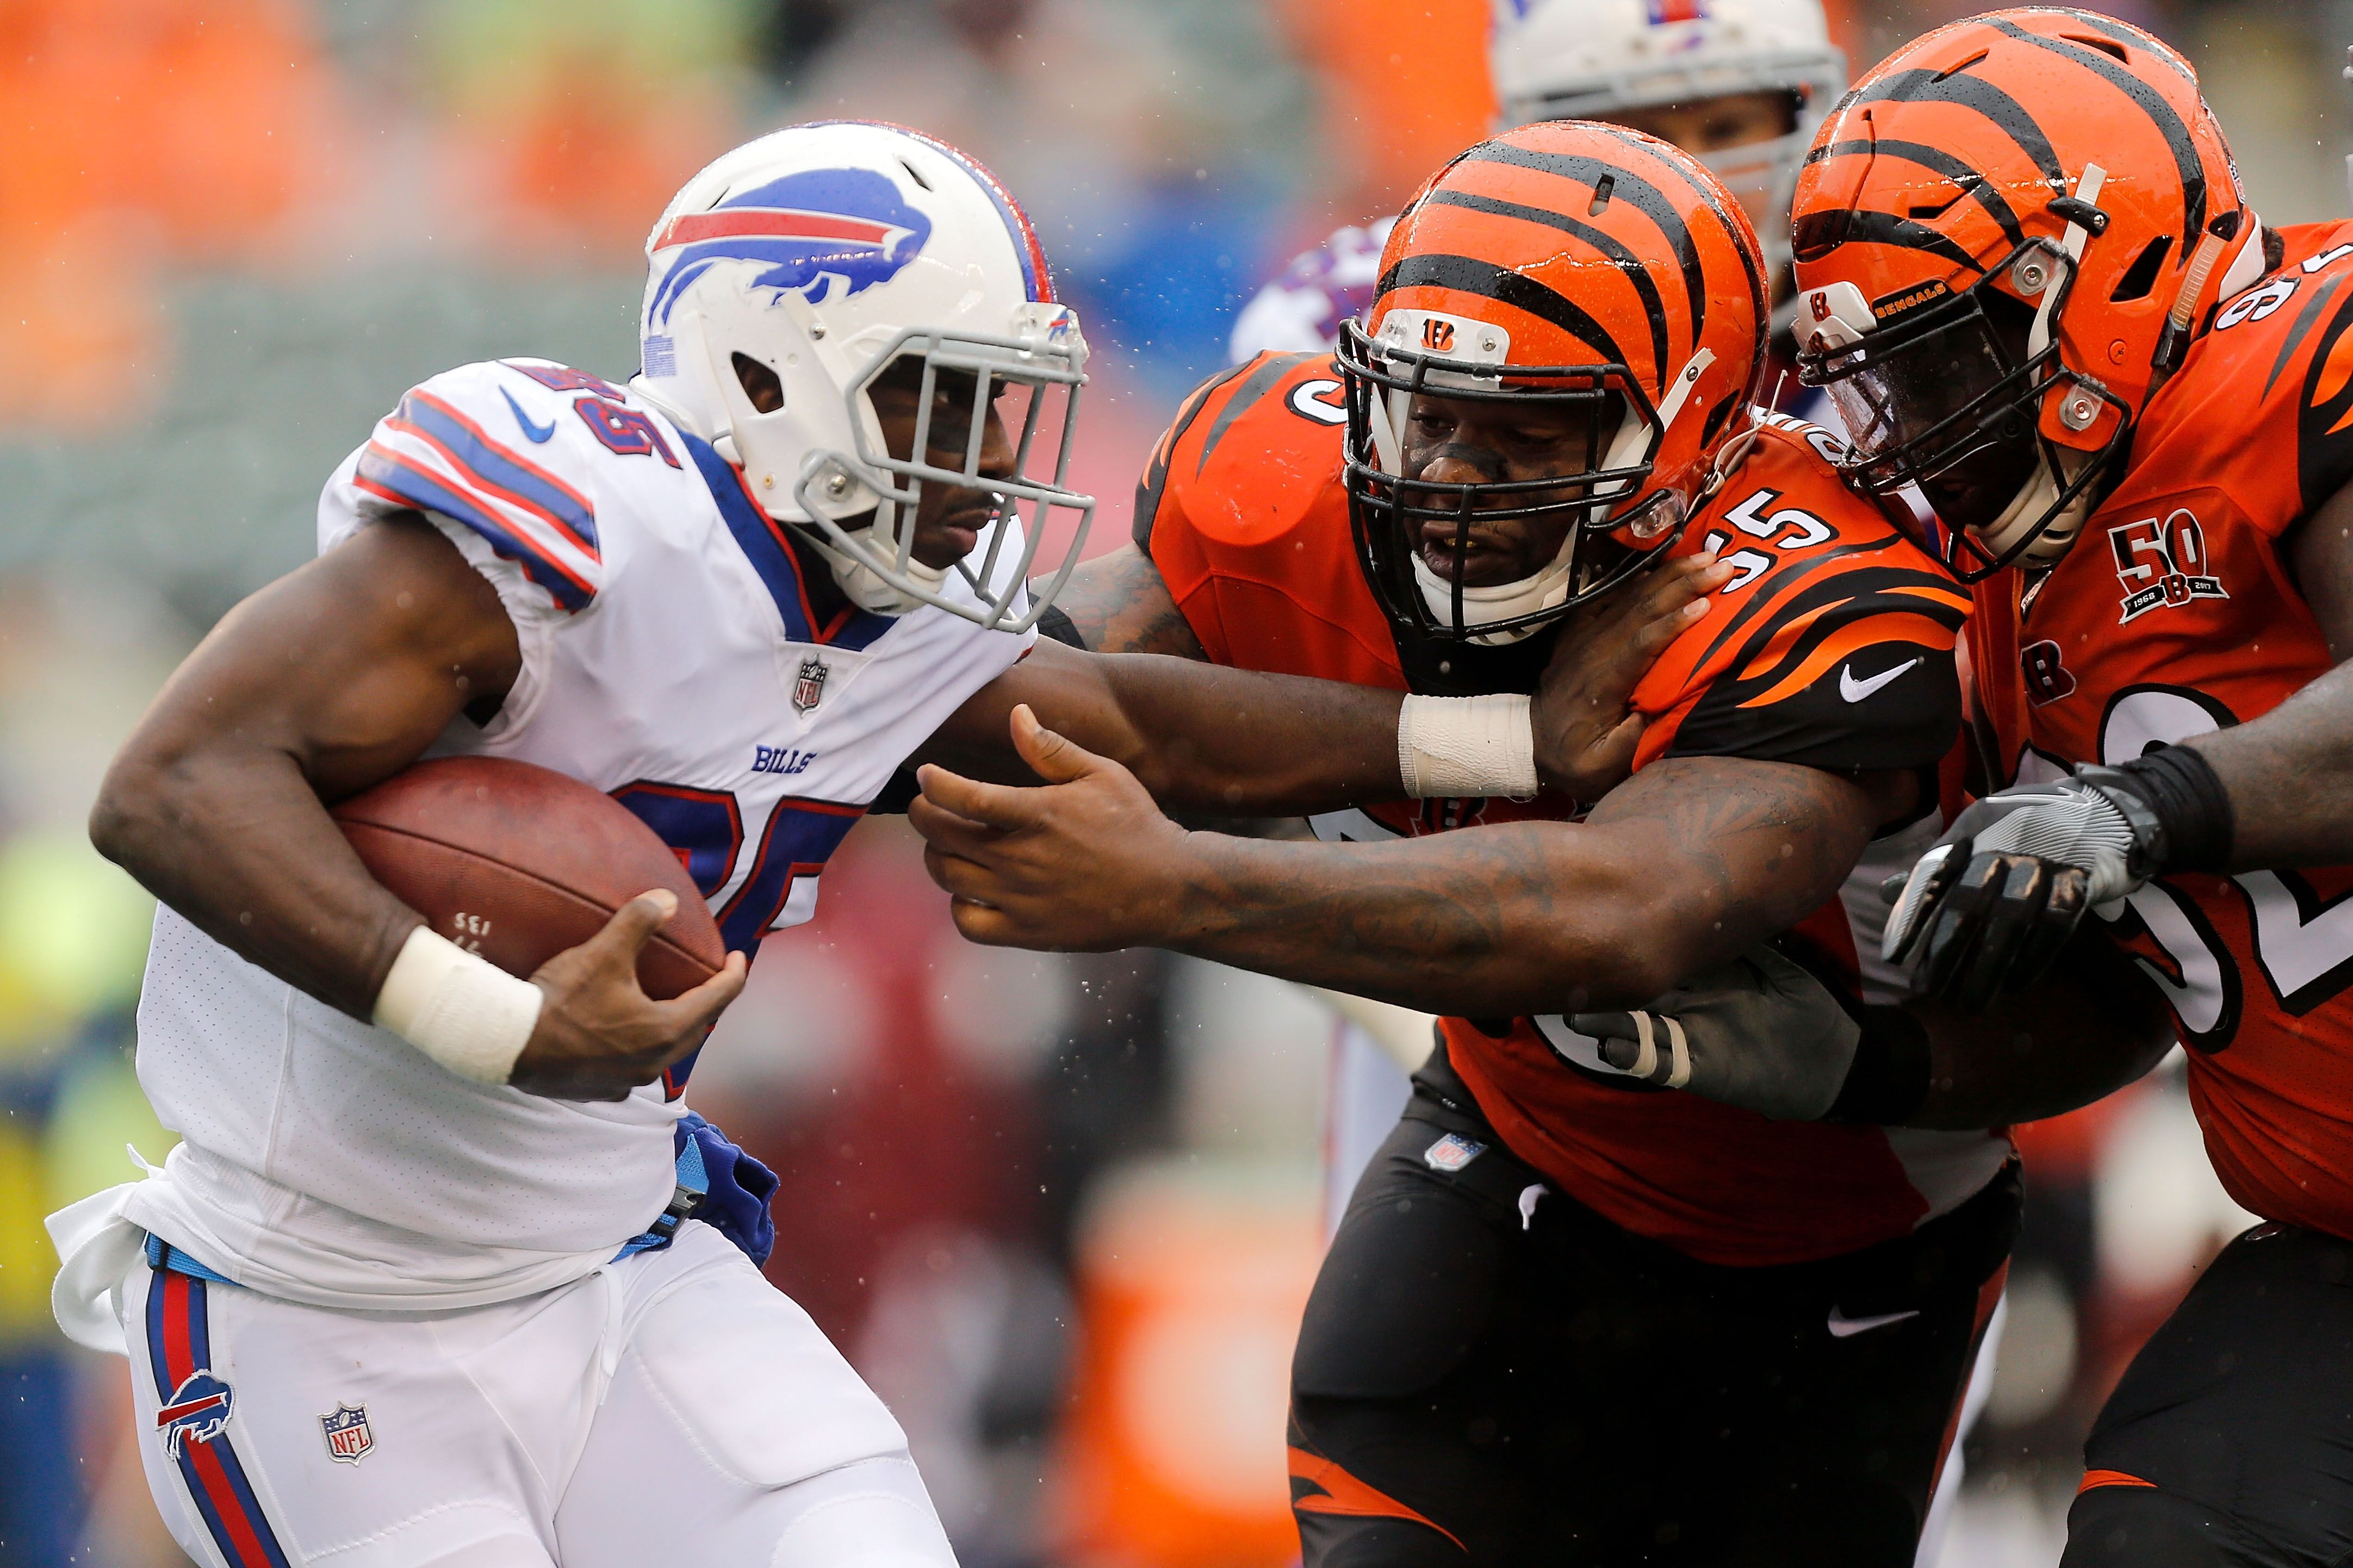 859078450-buffalo-bills-v-cincinnati-bengals.jpg